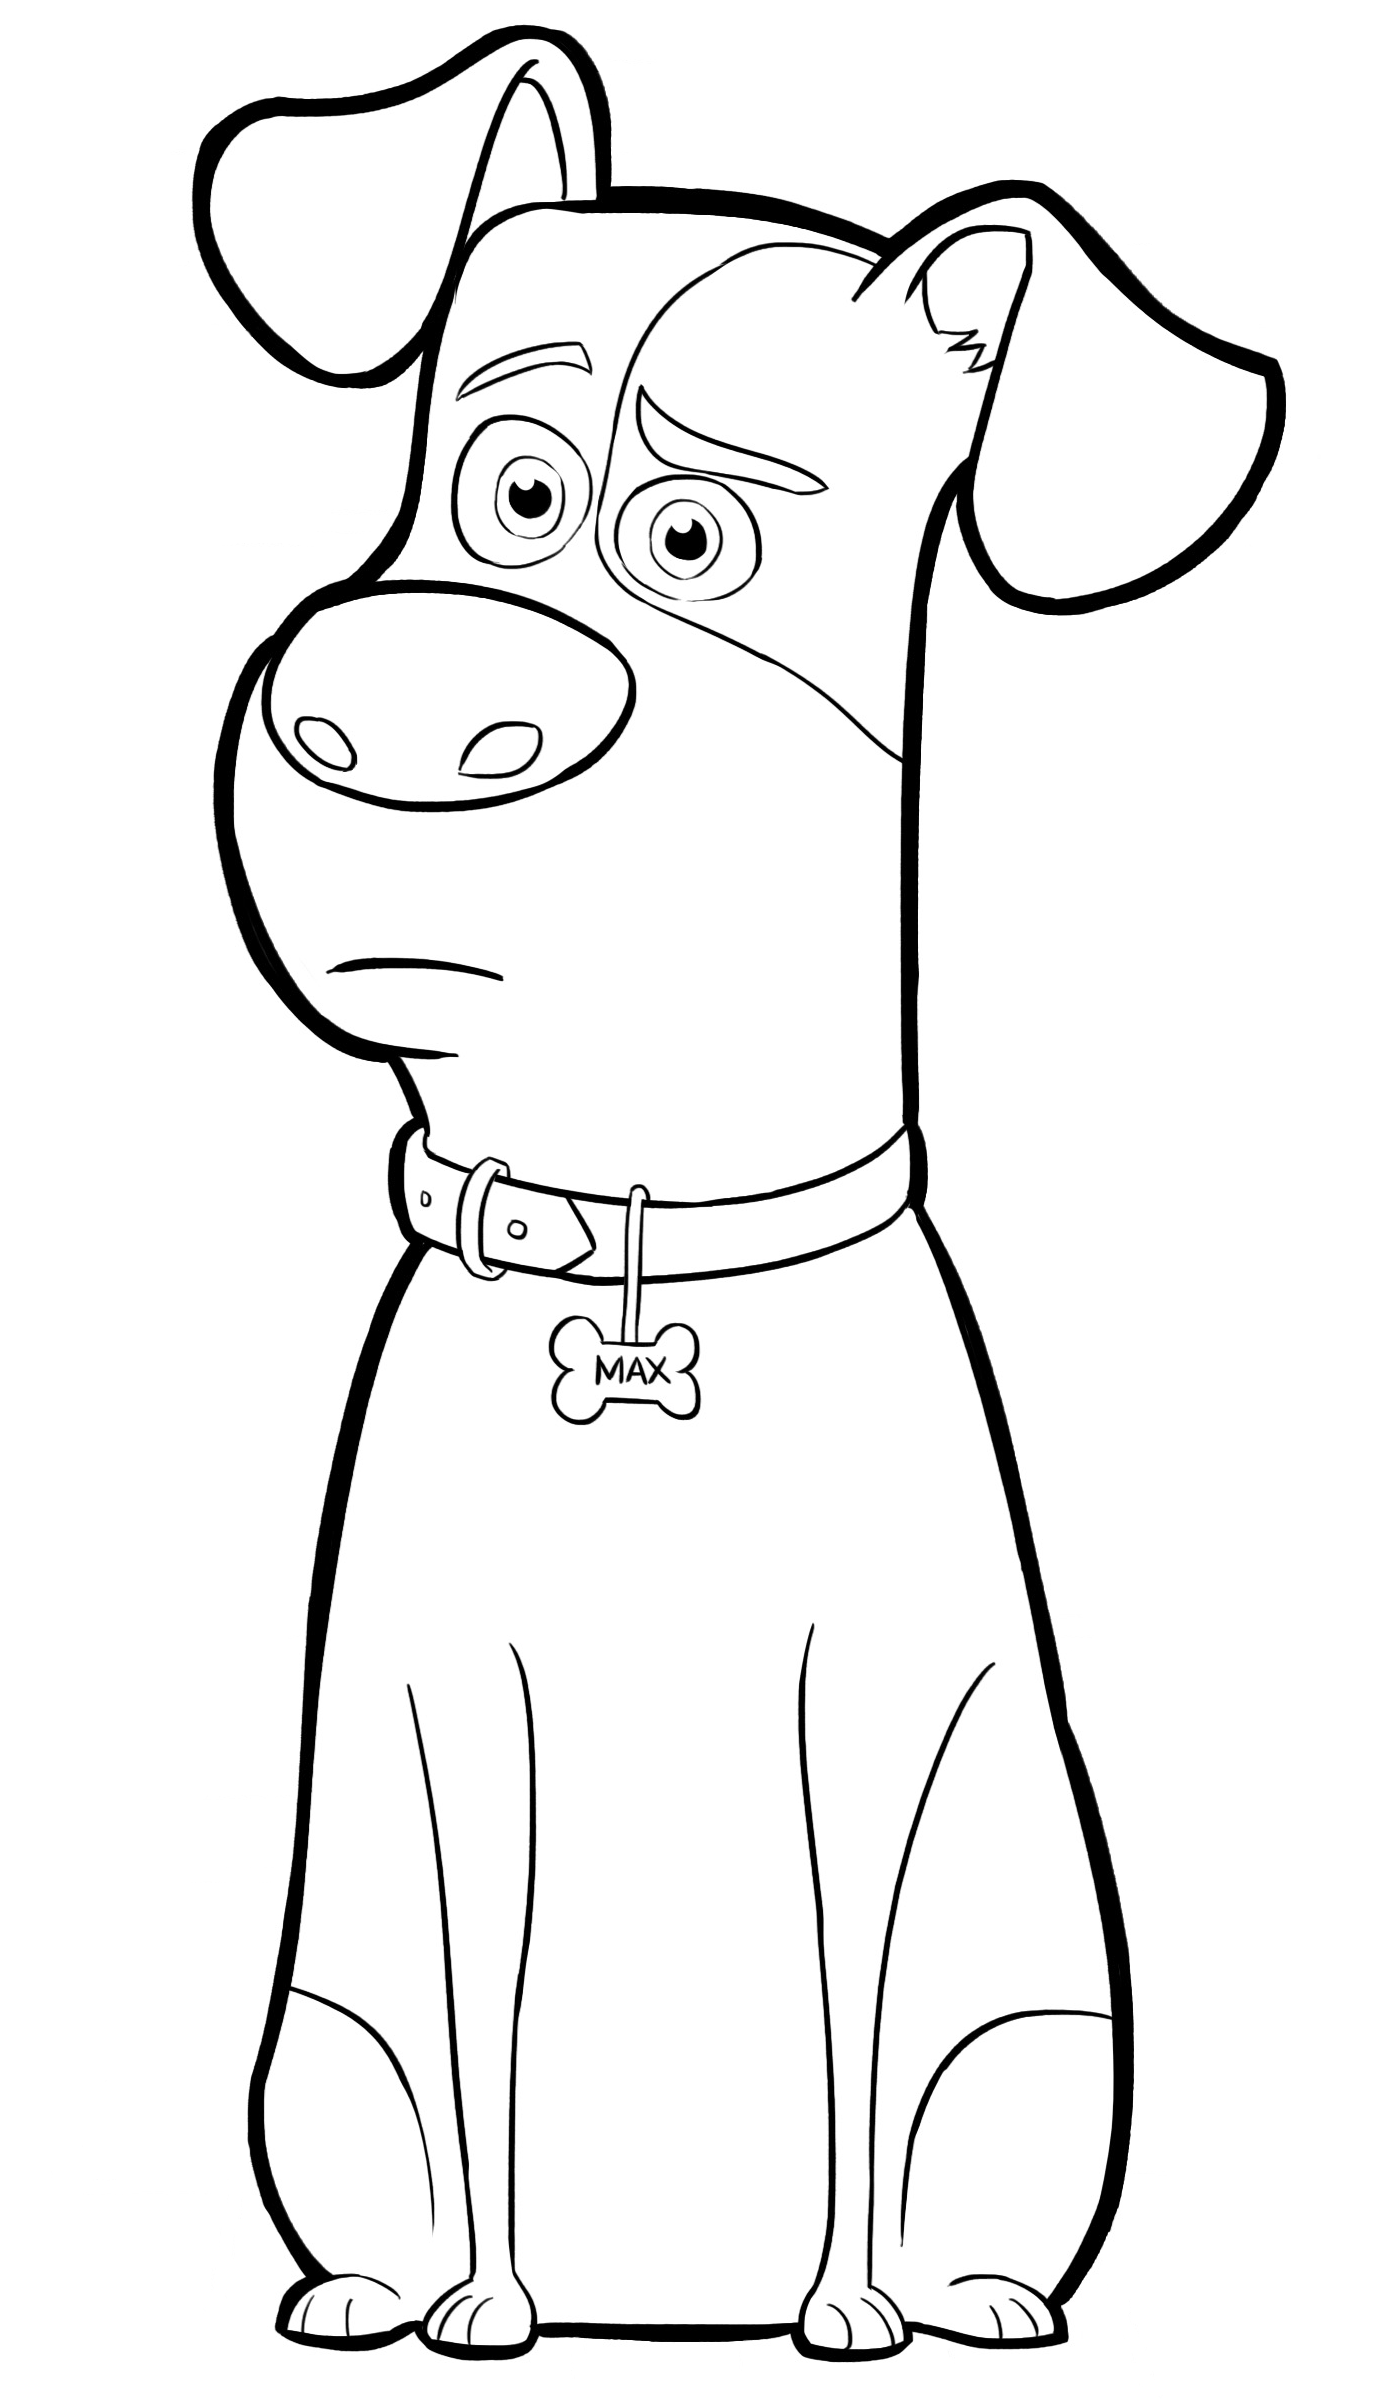 Max From The Secret Life Of Pets Coloring Page - Coloring Home